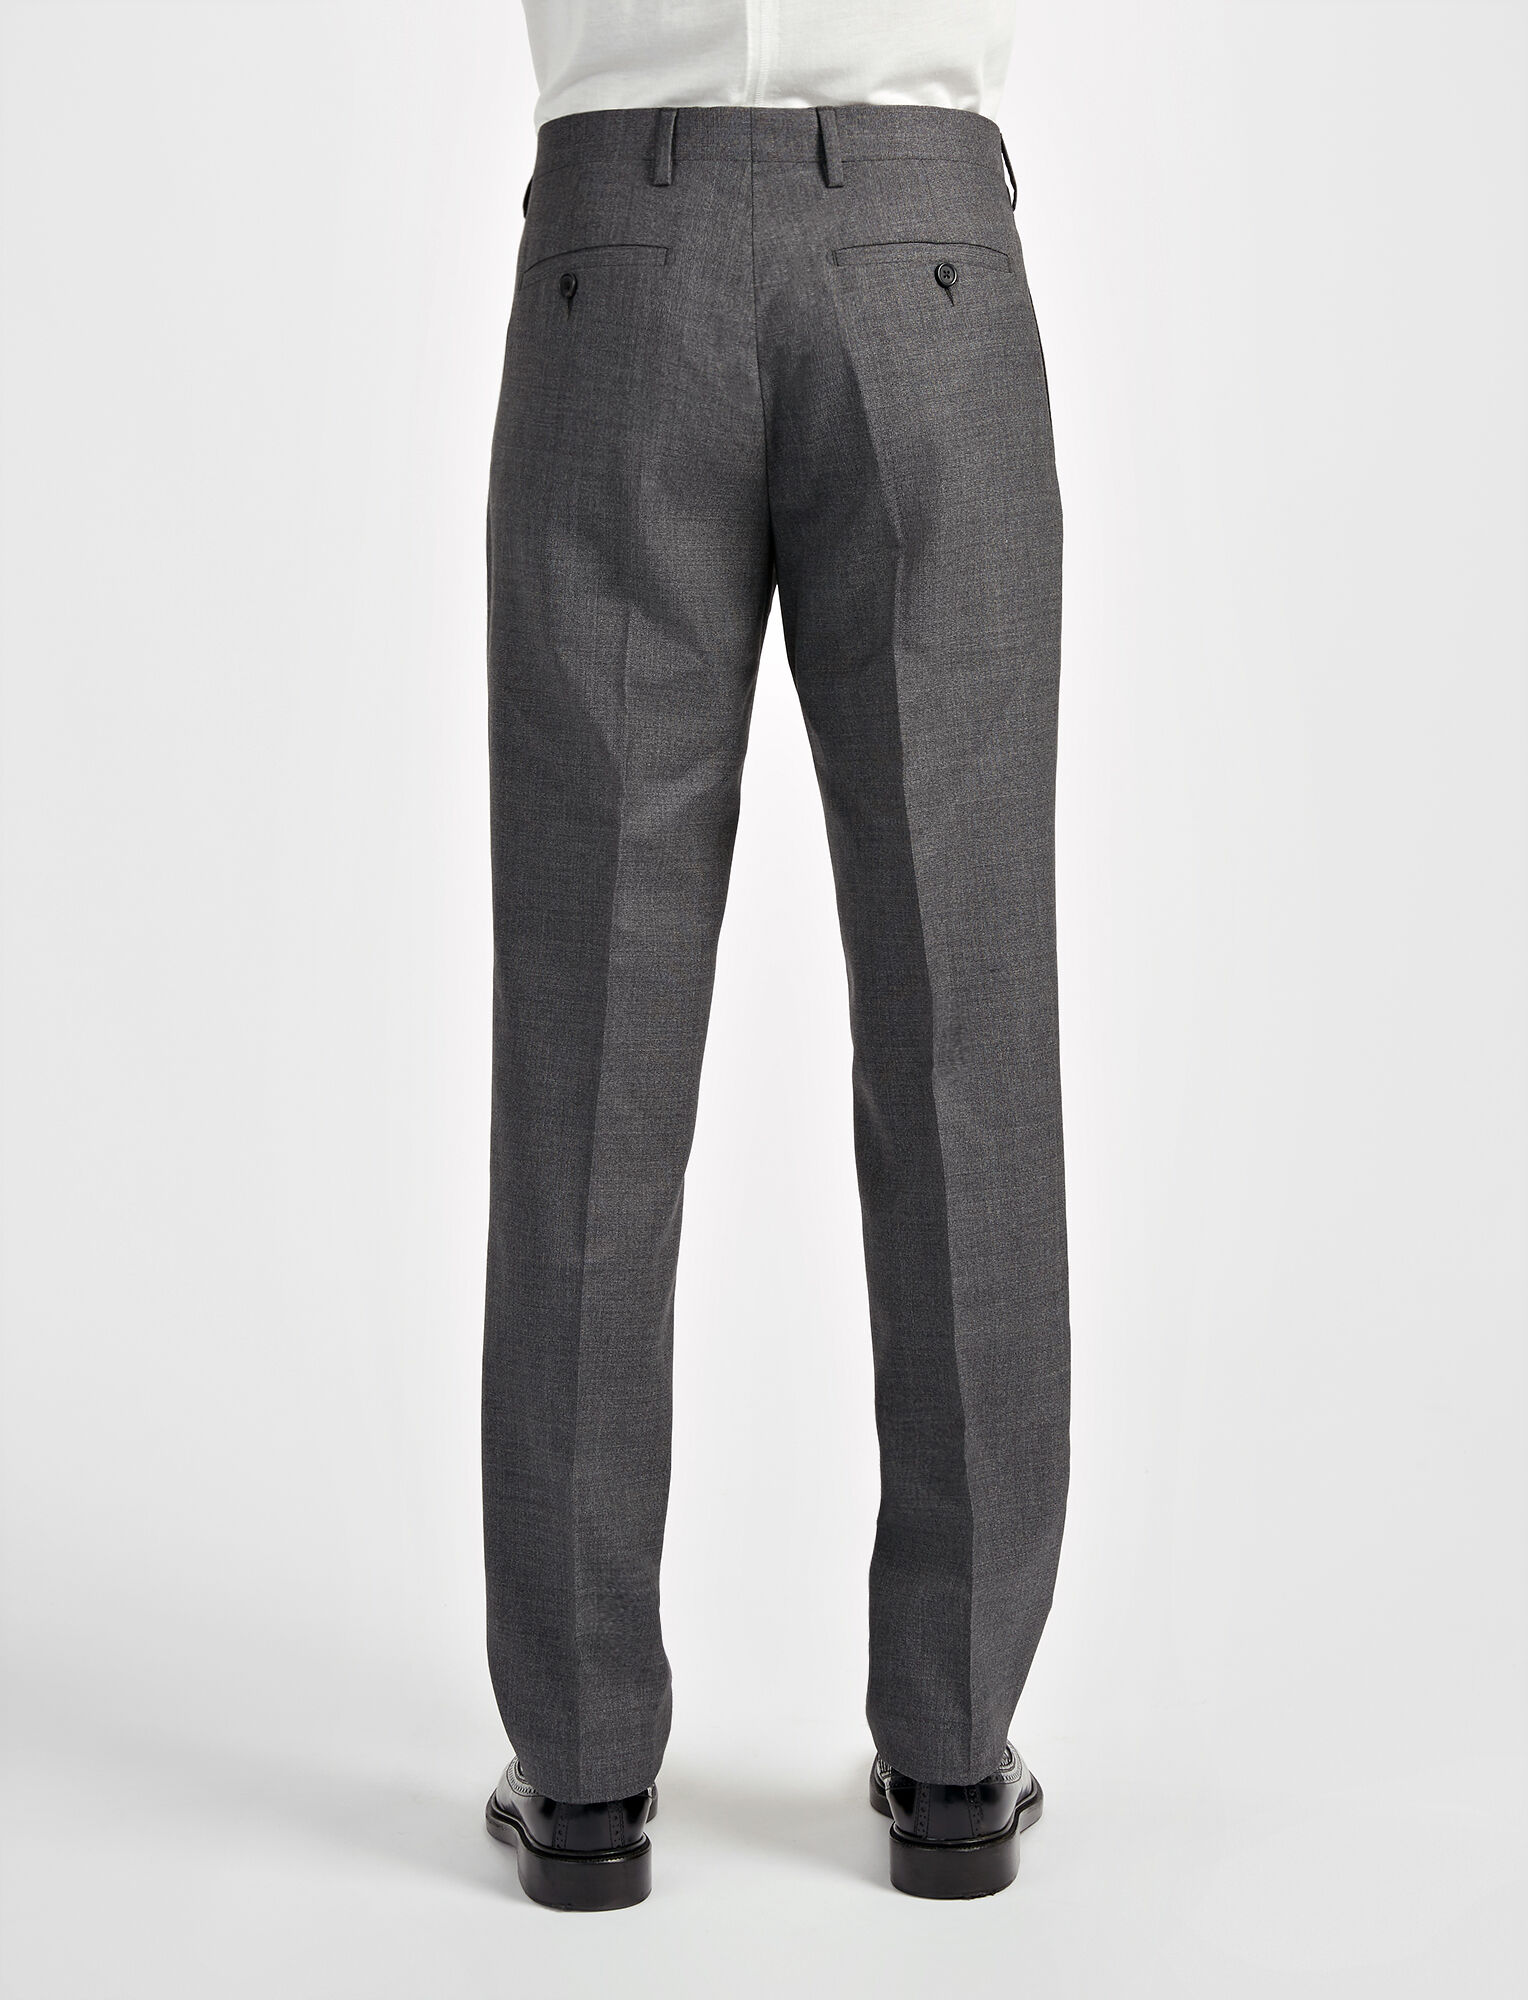 Joseph, Tropical Wool Darwin Suit Trouser, in GREY